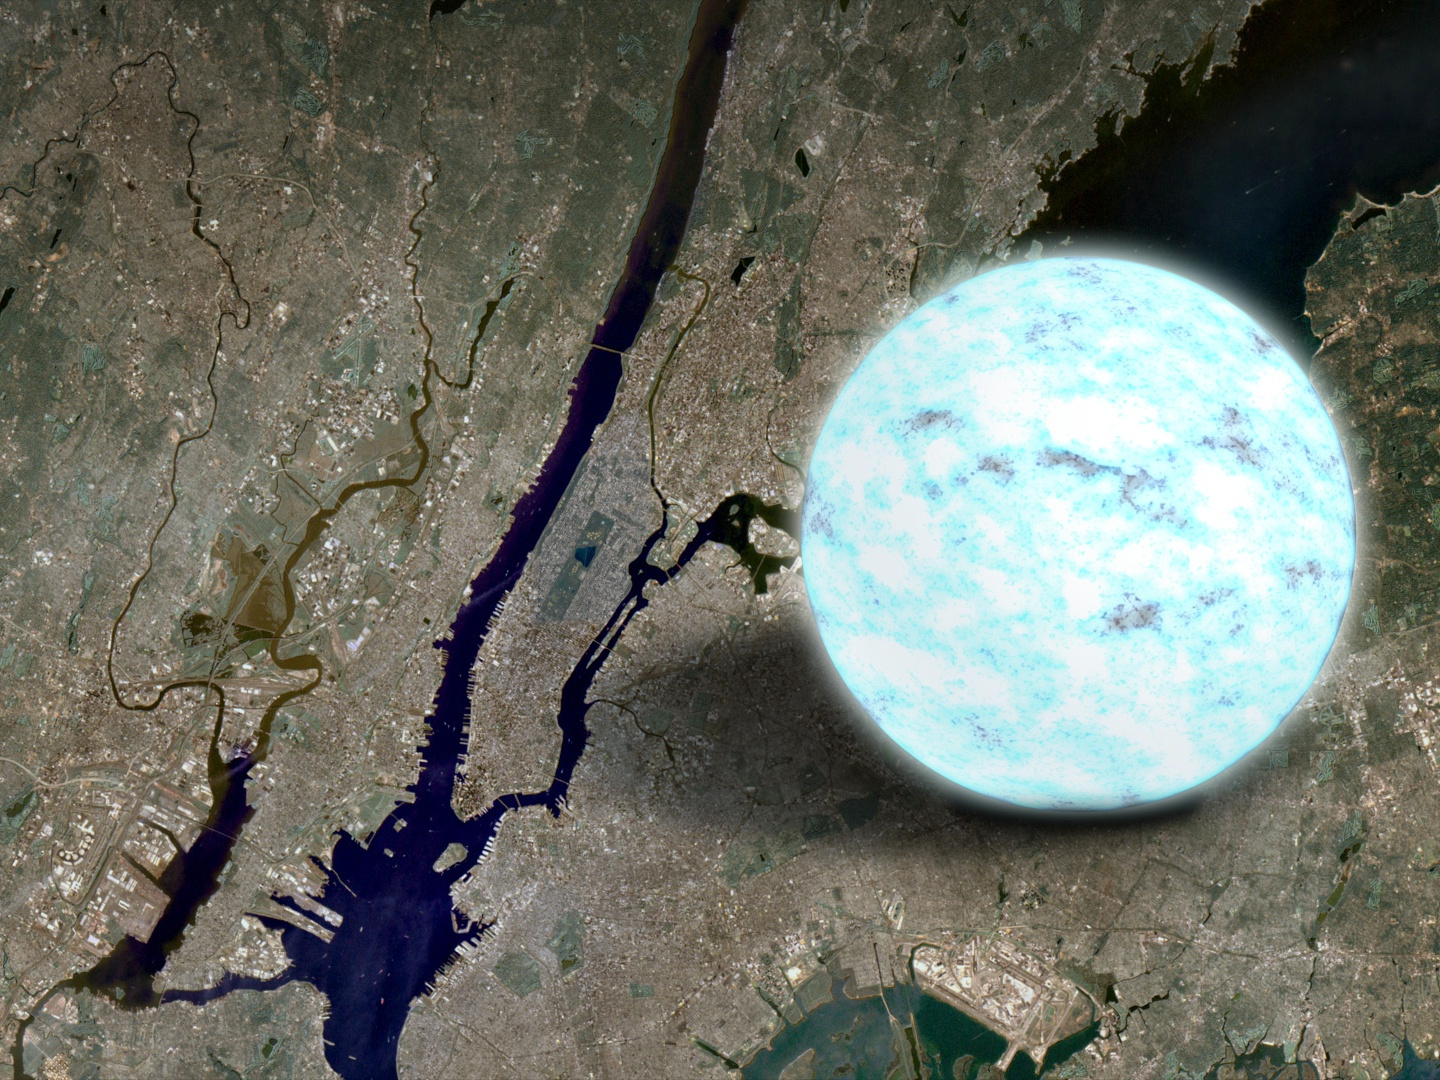 This illustration compares the size of a neutron star to Manhattan Island in New York, which is about 13miles long. A neutron star is the crushed core left behind when a massive star explodes as a supernova and is the densest object astronomers can directly observe. Illustration credits: NASA's Goddard Space Flight Center.